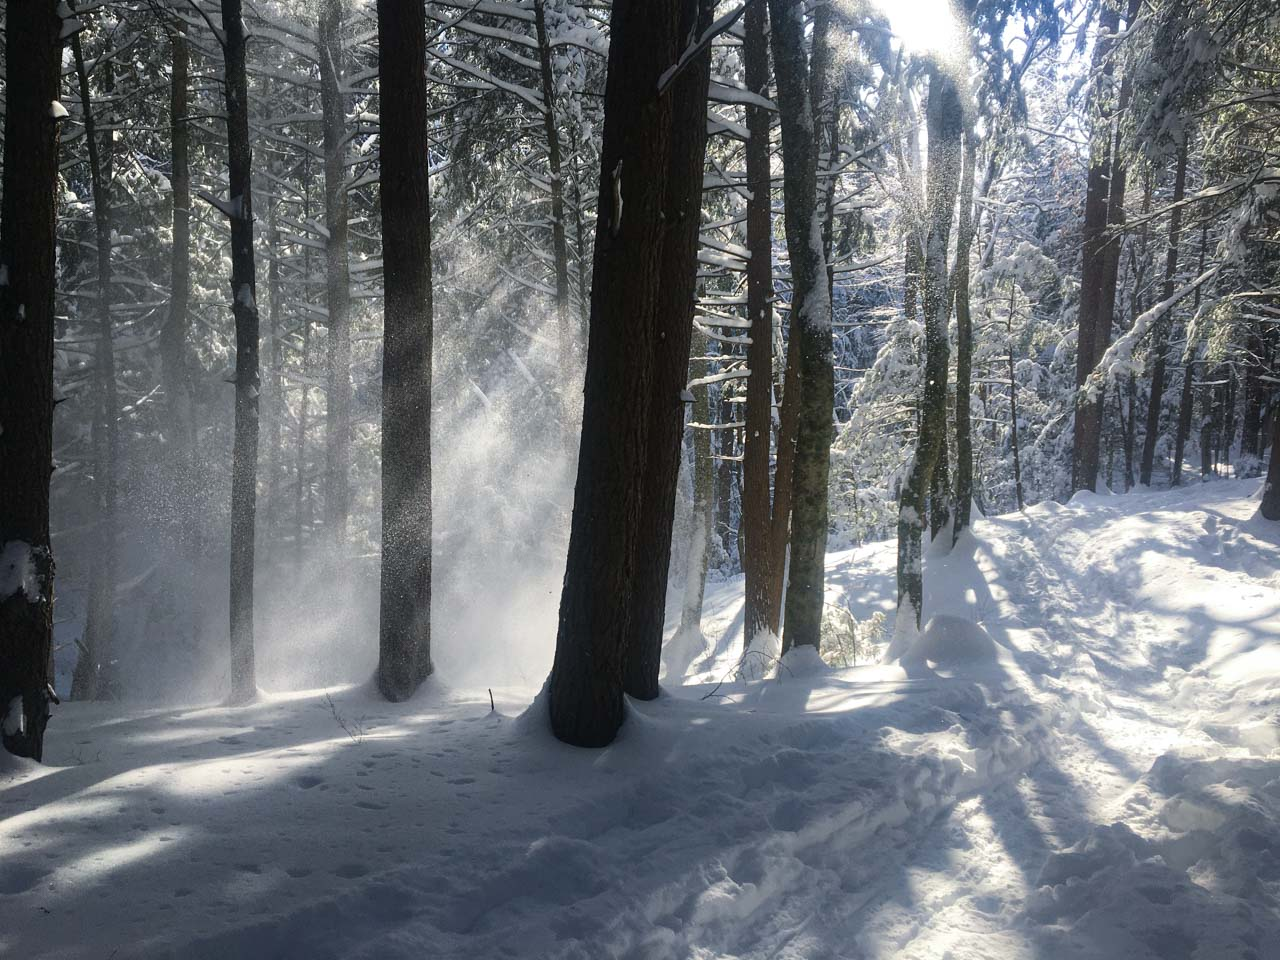 Snow blowing through the woods with sunlight behind it snowshoe trail on right